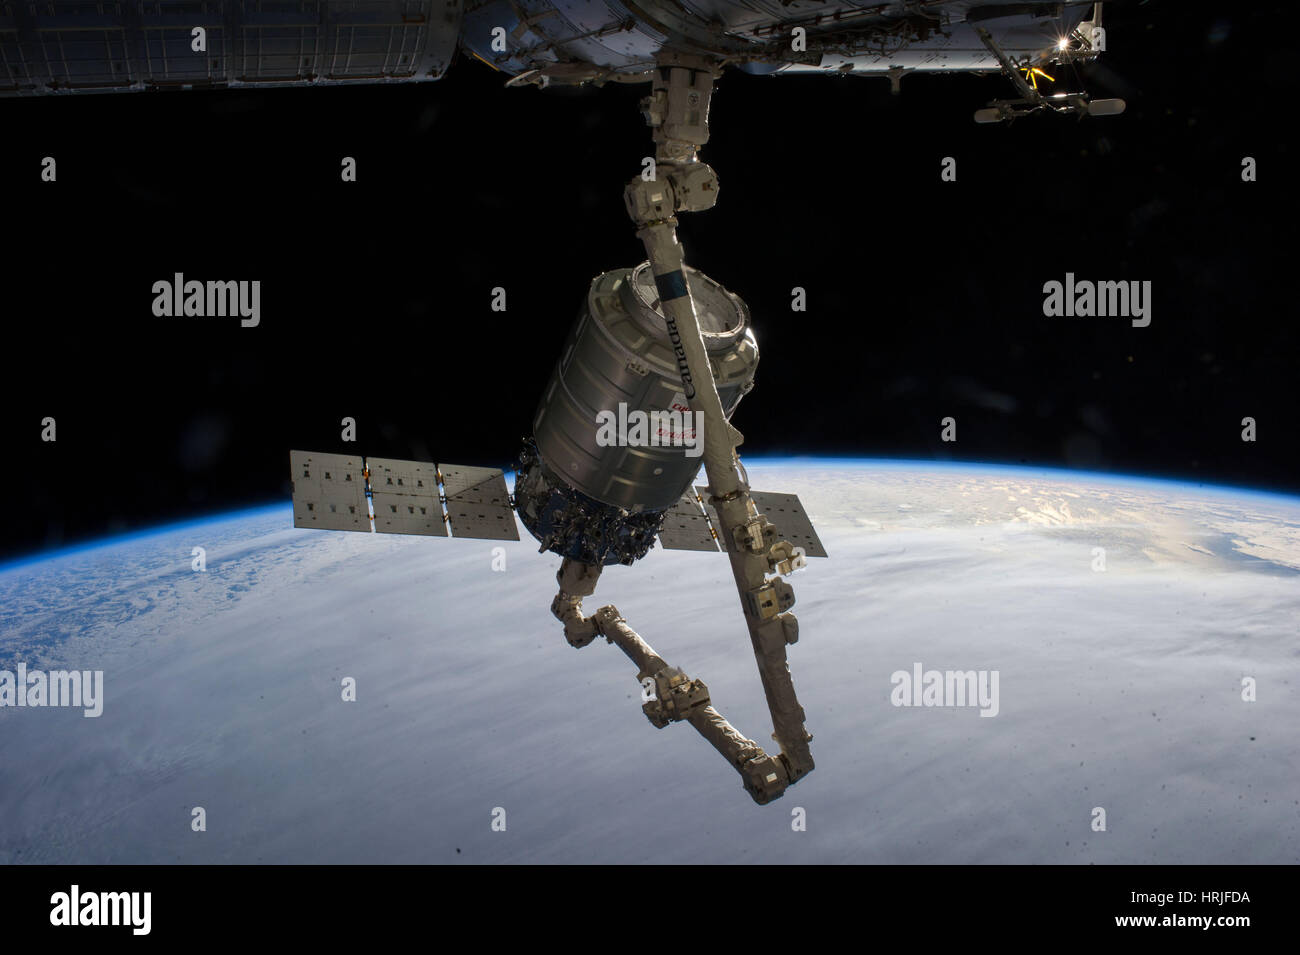 Cygnus Attached To Canadarm2 - Stock Image